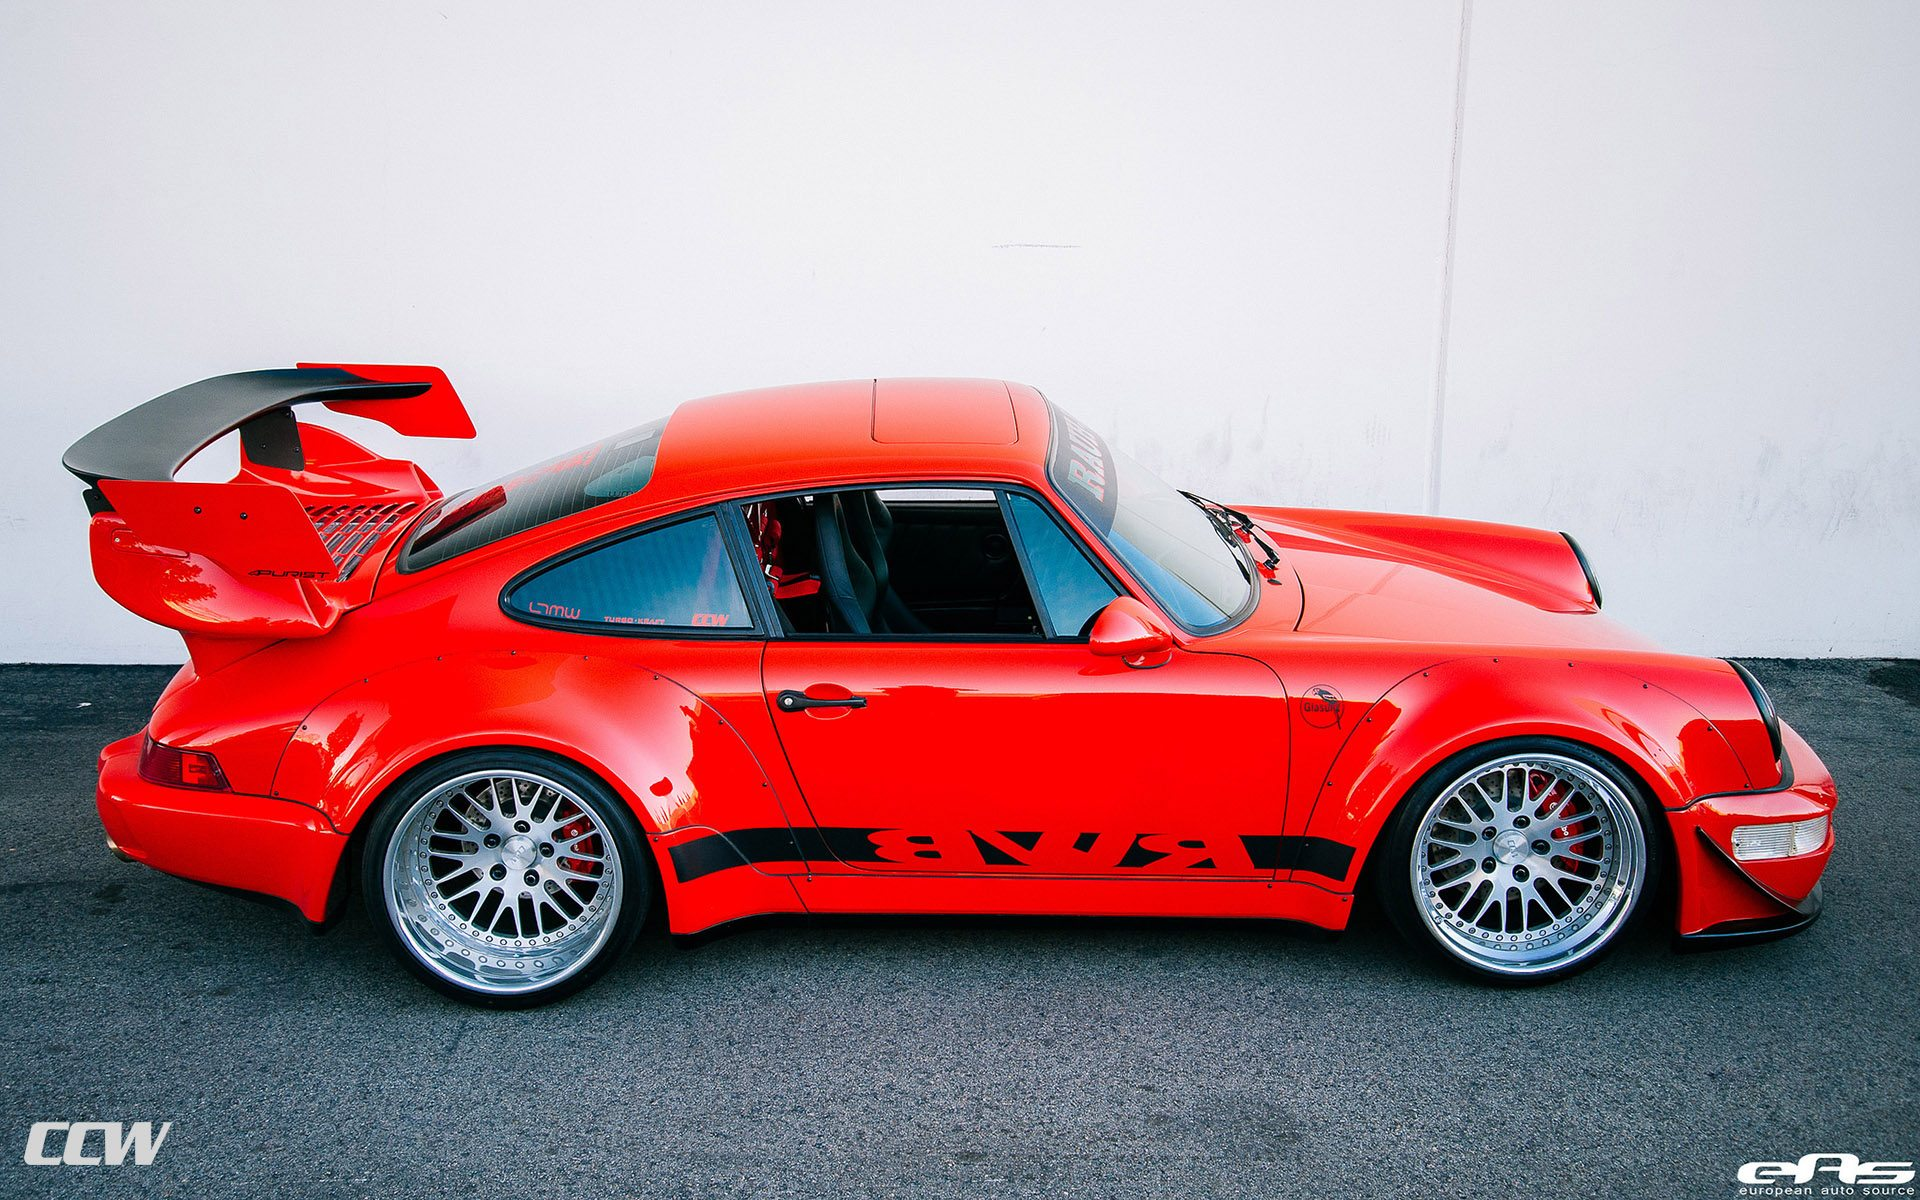 Rwb Porsche Wallpaper Rwb Porsche 964 Turbo 1329998 Hd Wallpaper Backgrounds Download